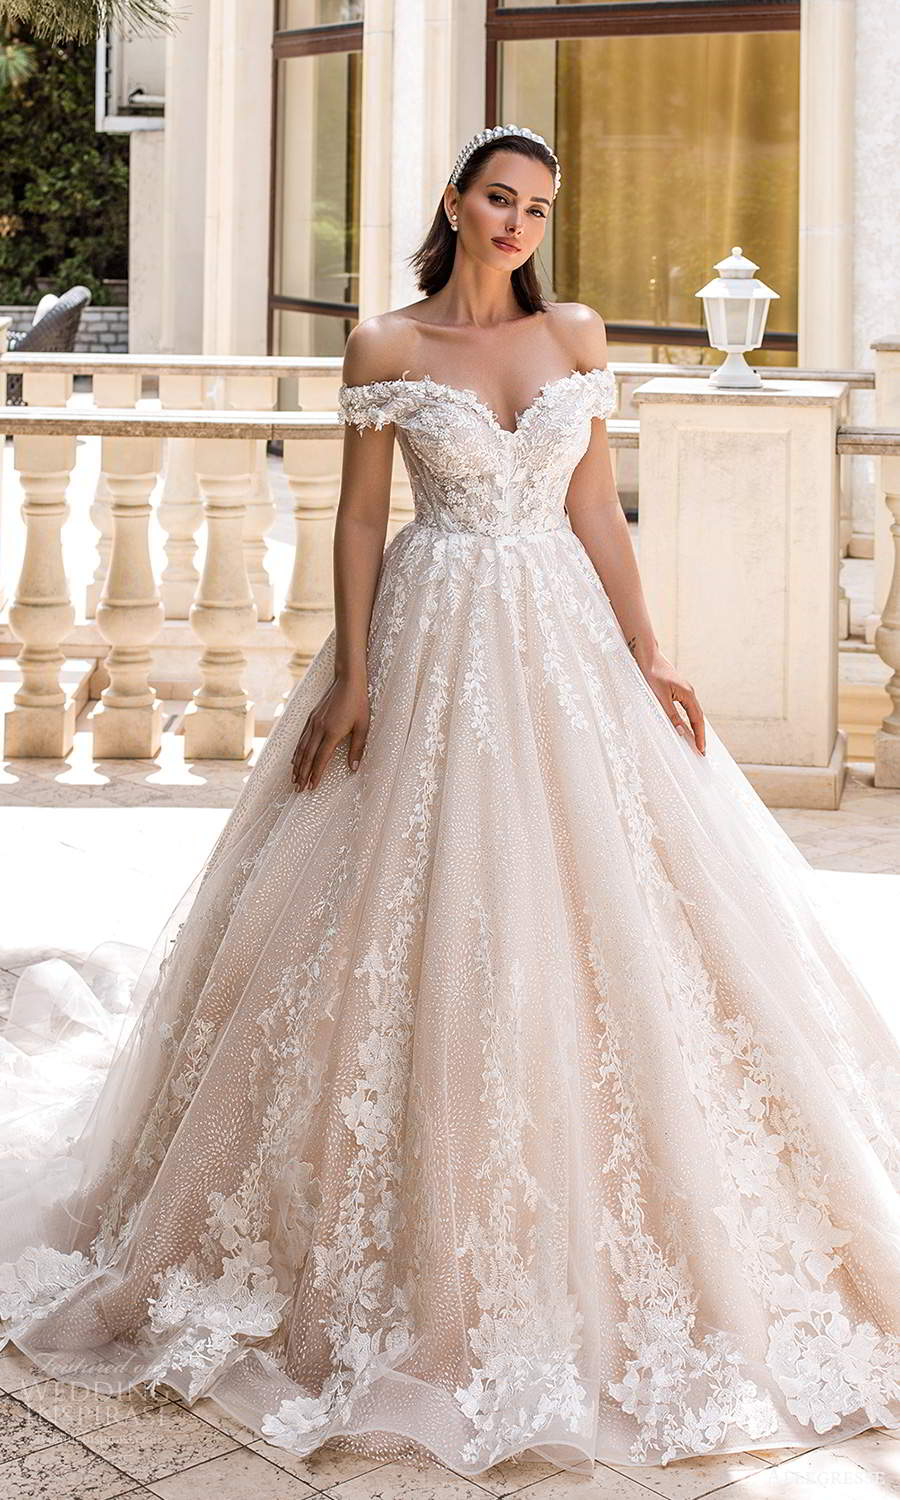 allegresse 2021 bridal off shoulder straps sweetheart neckline fully embellished a line ball gown wedding dress chapel train blush champagne (11) mv